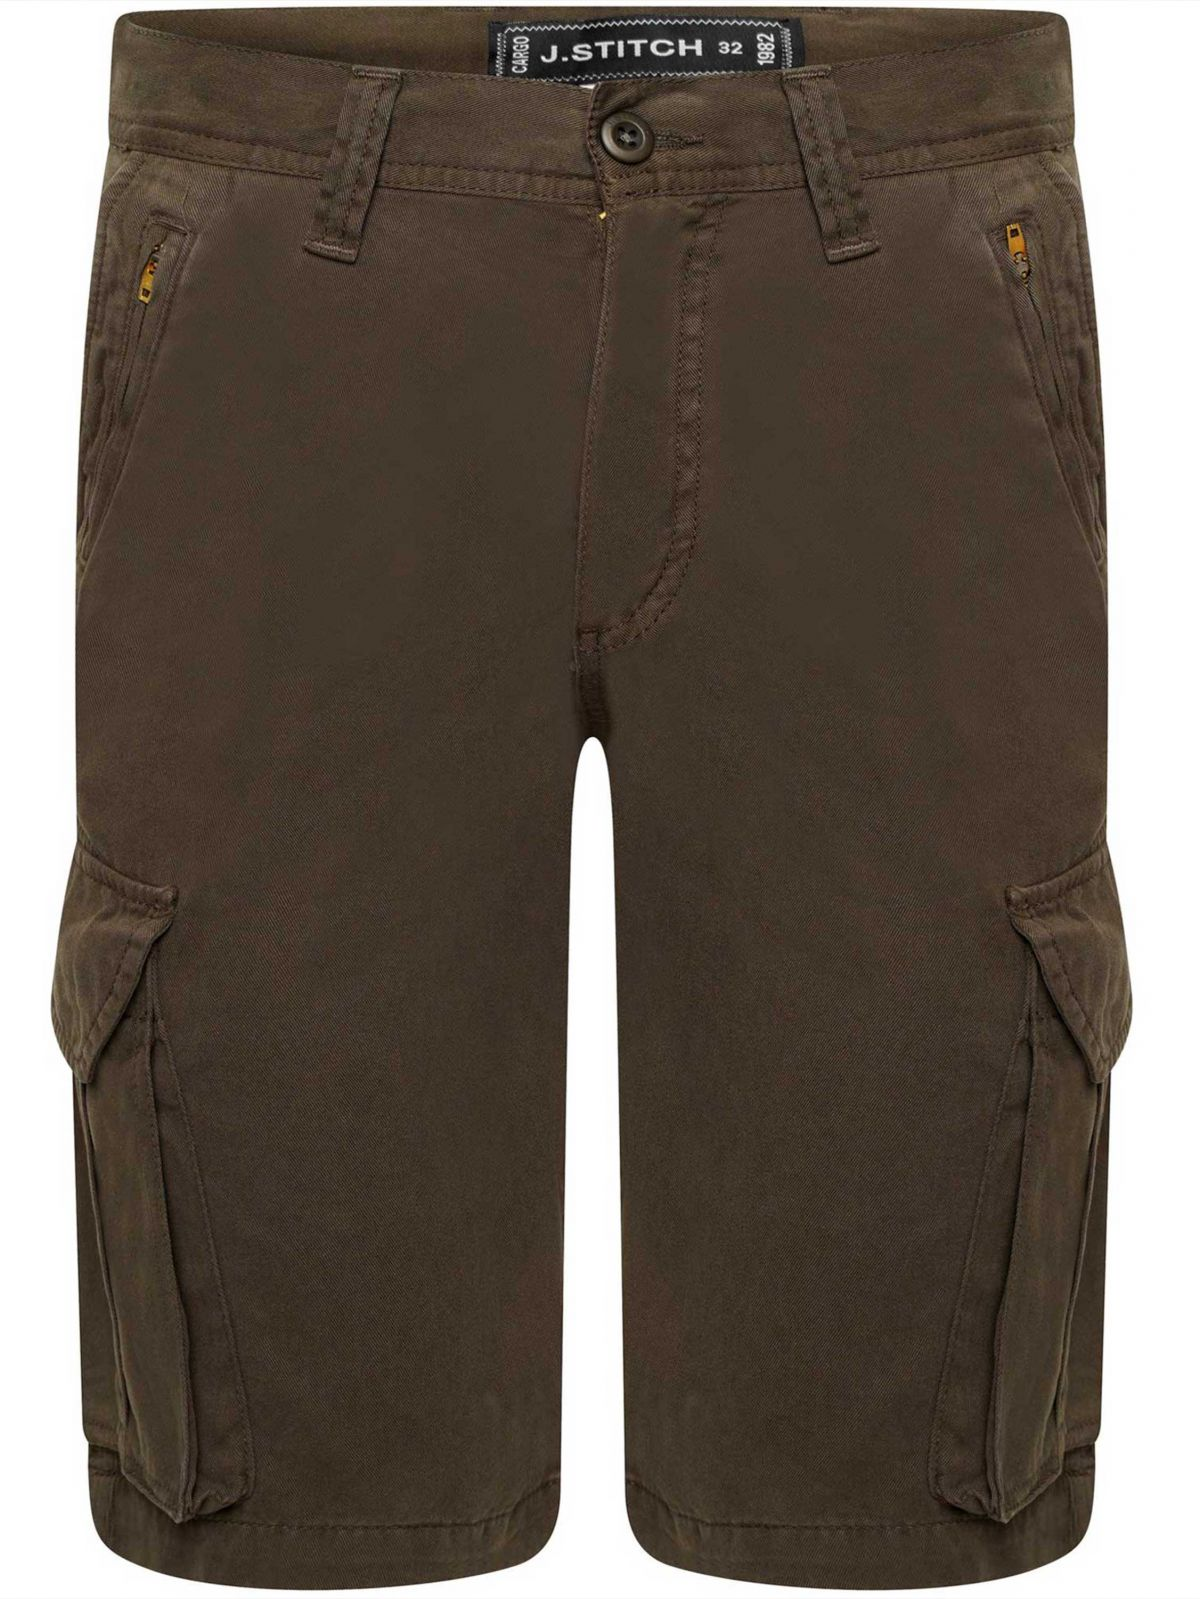 Kruze Mens Soft Cotton Cargo Summer Shorts